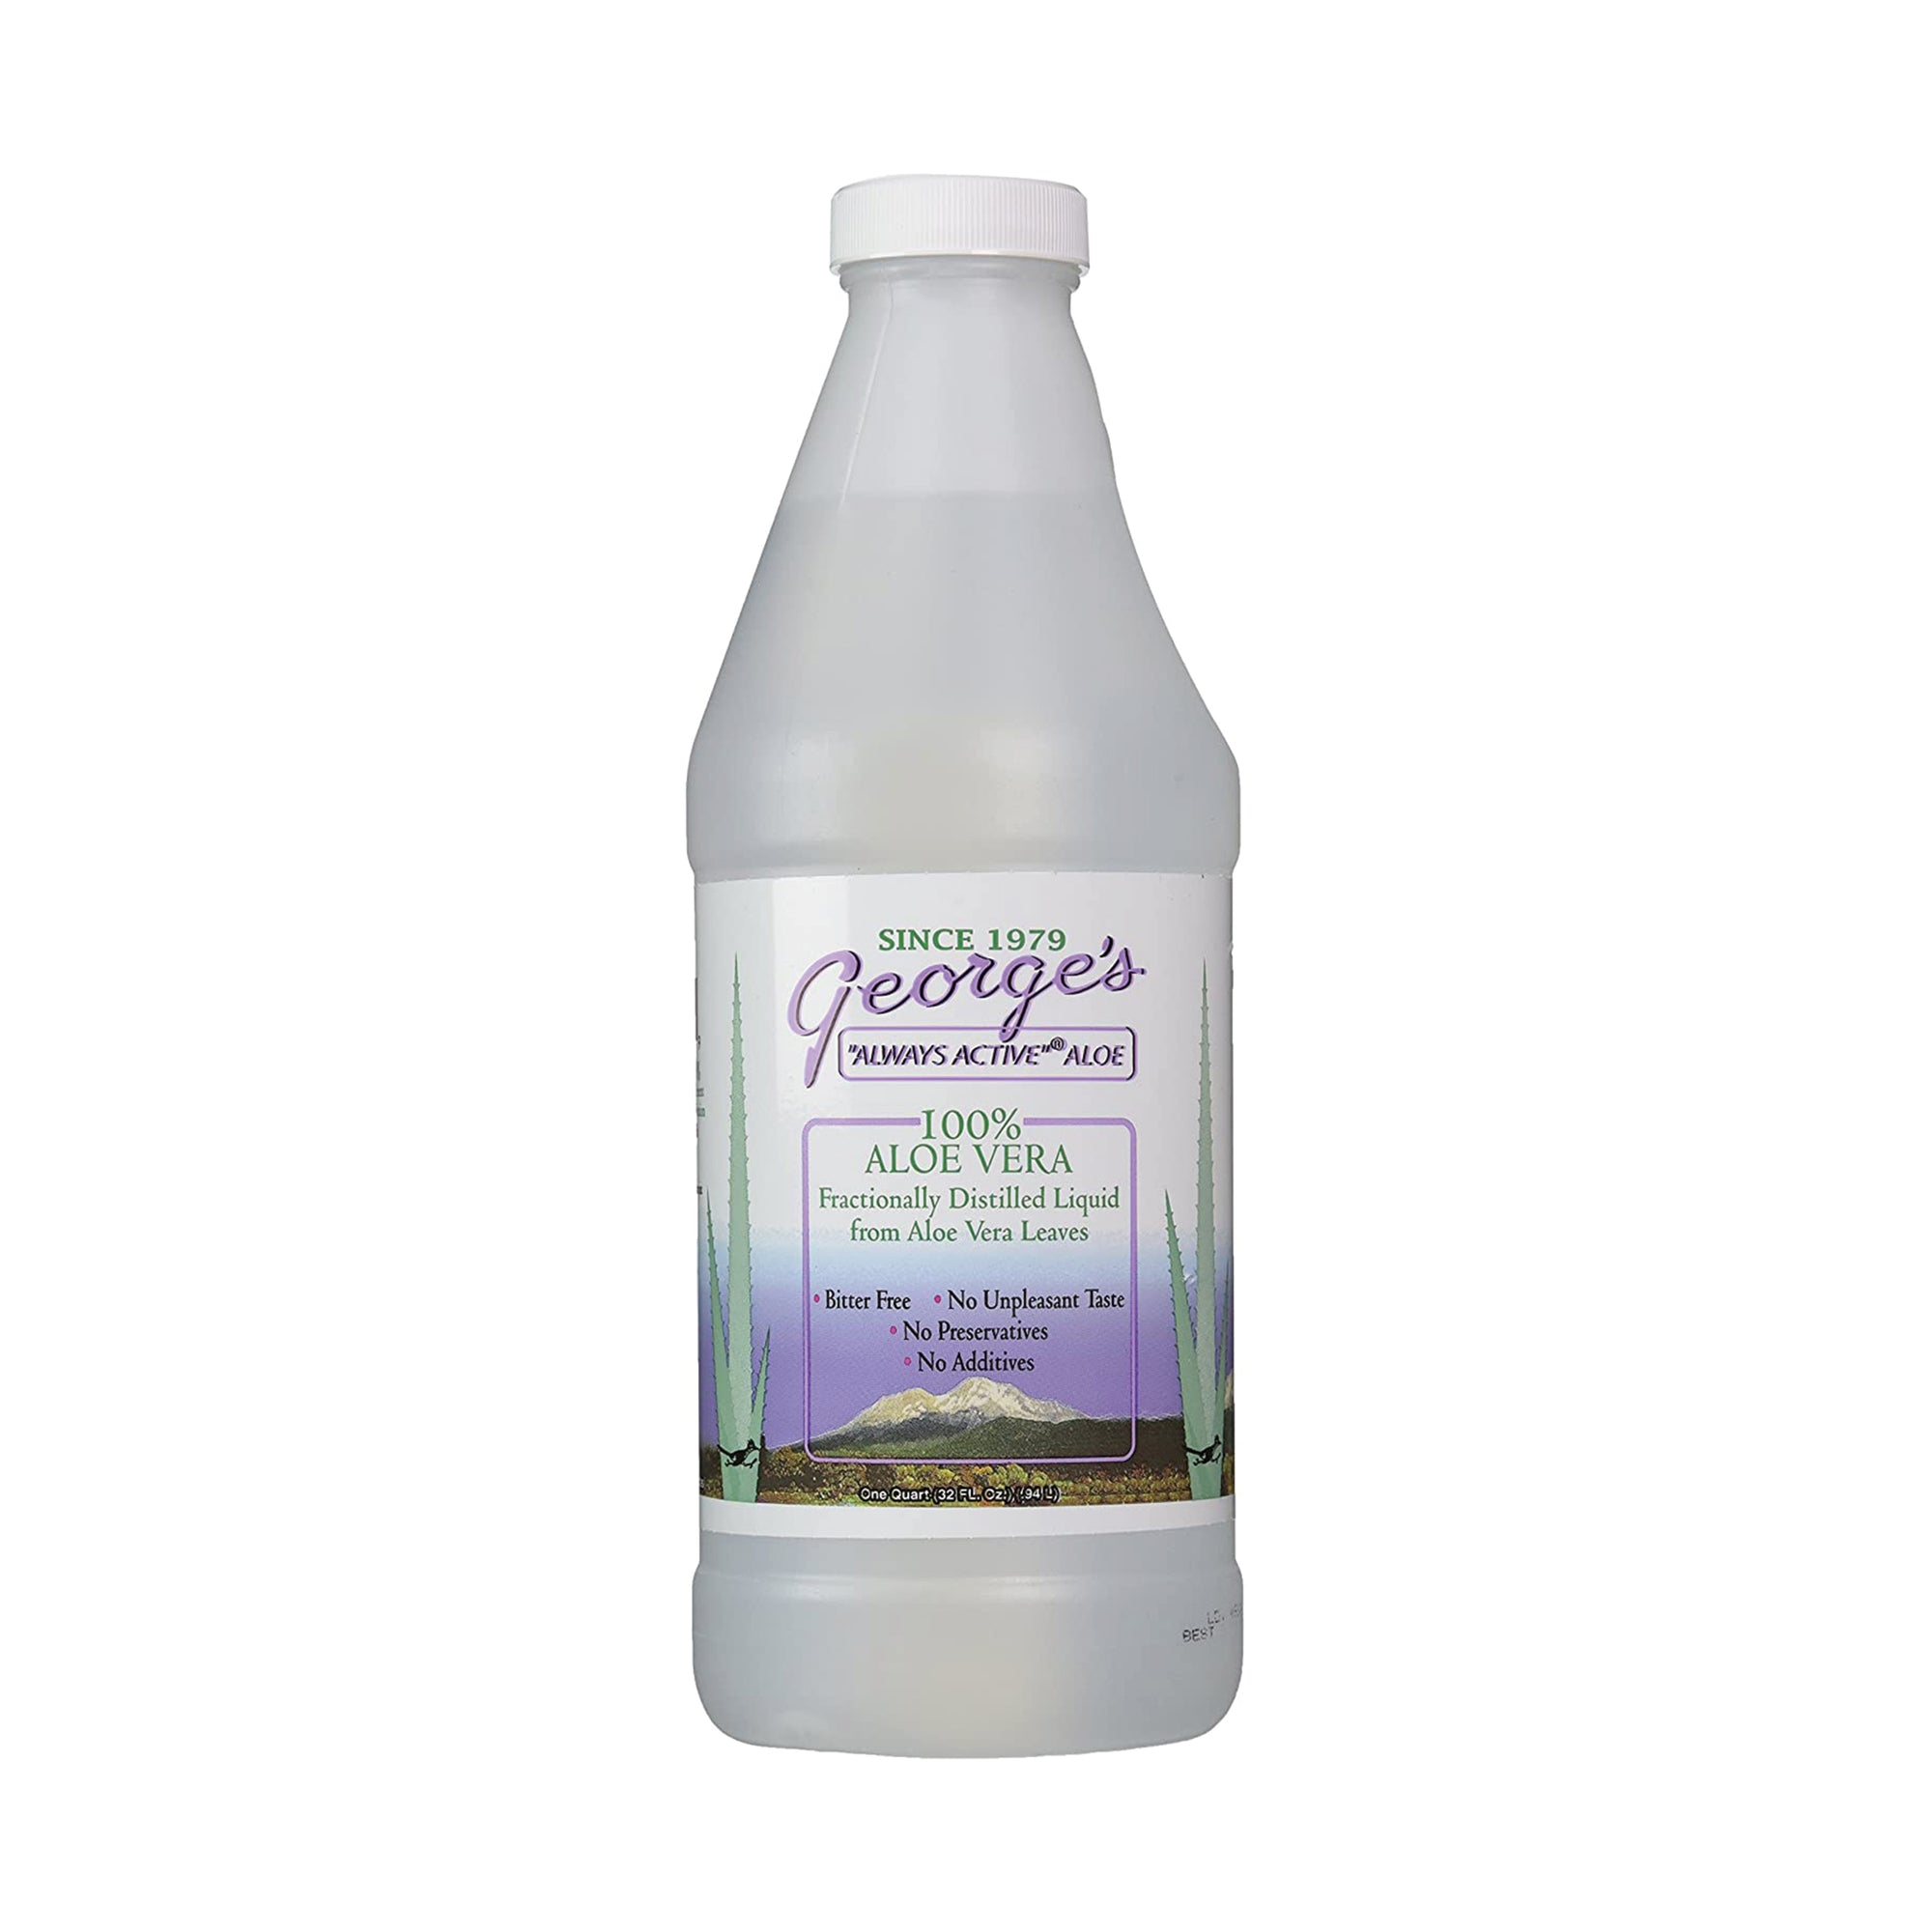 George's 100% Aloe Vera Liquid 32 fl oz - Fractionally Distilled, Bitter Free, No Unpleasant Taste, No Preservatives, No Additives